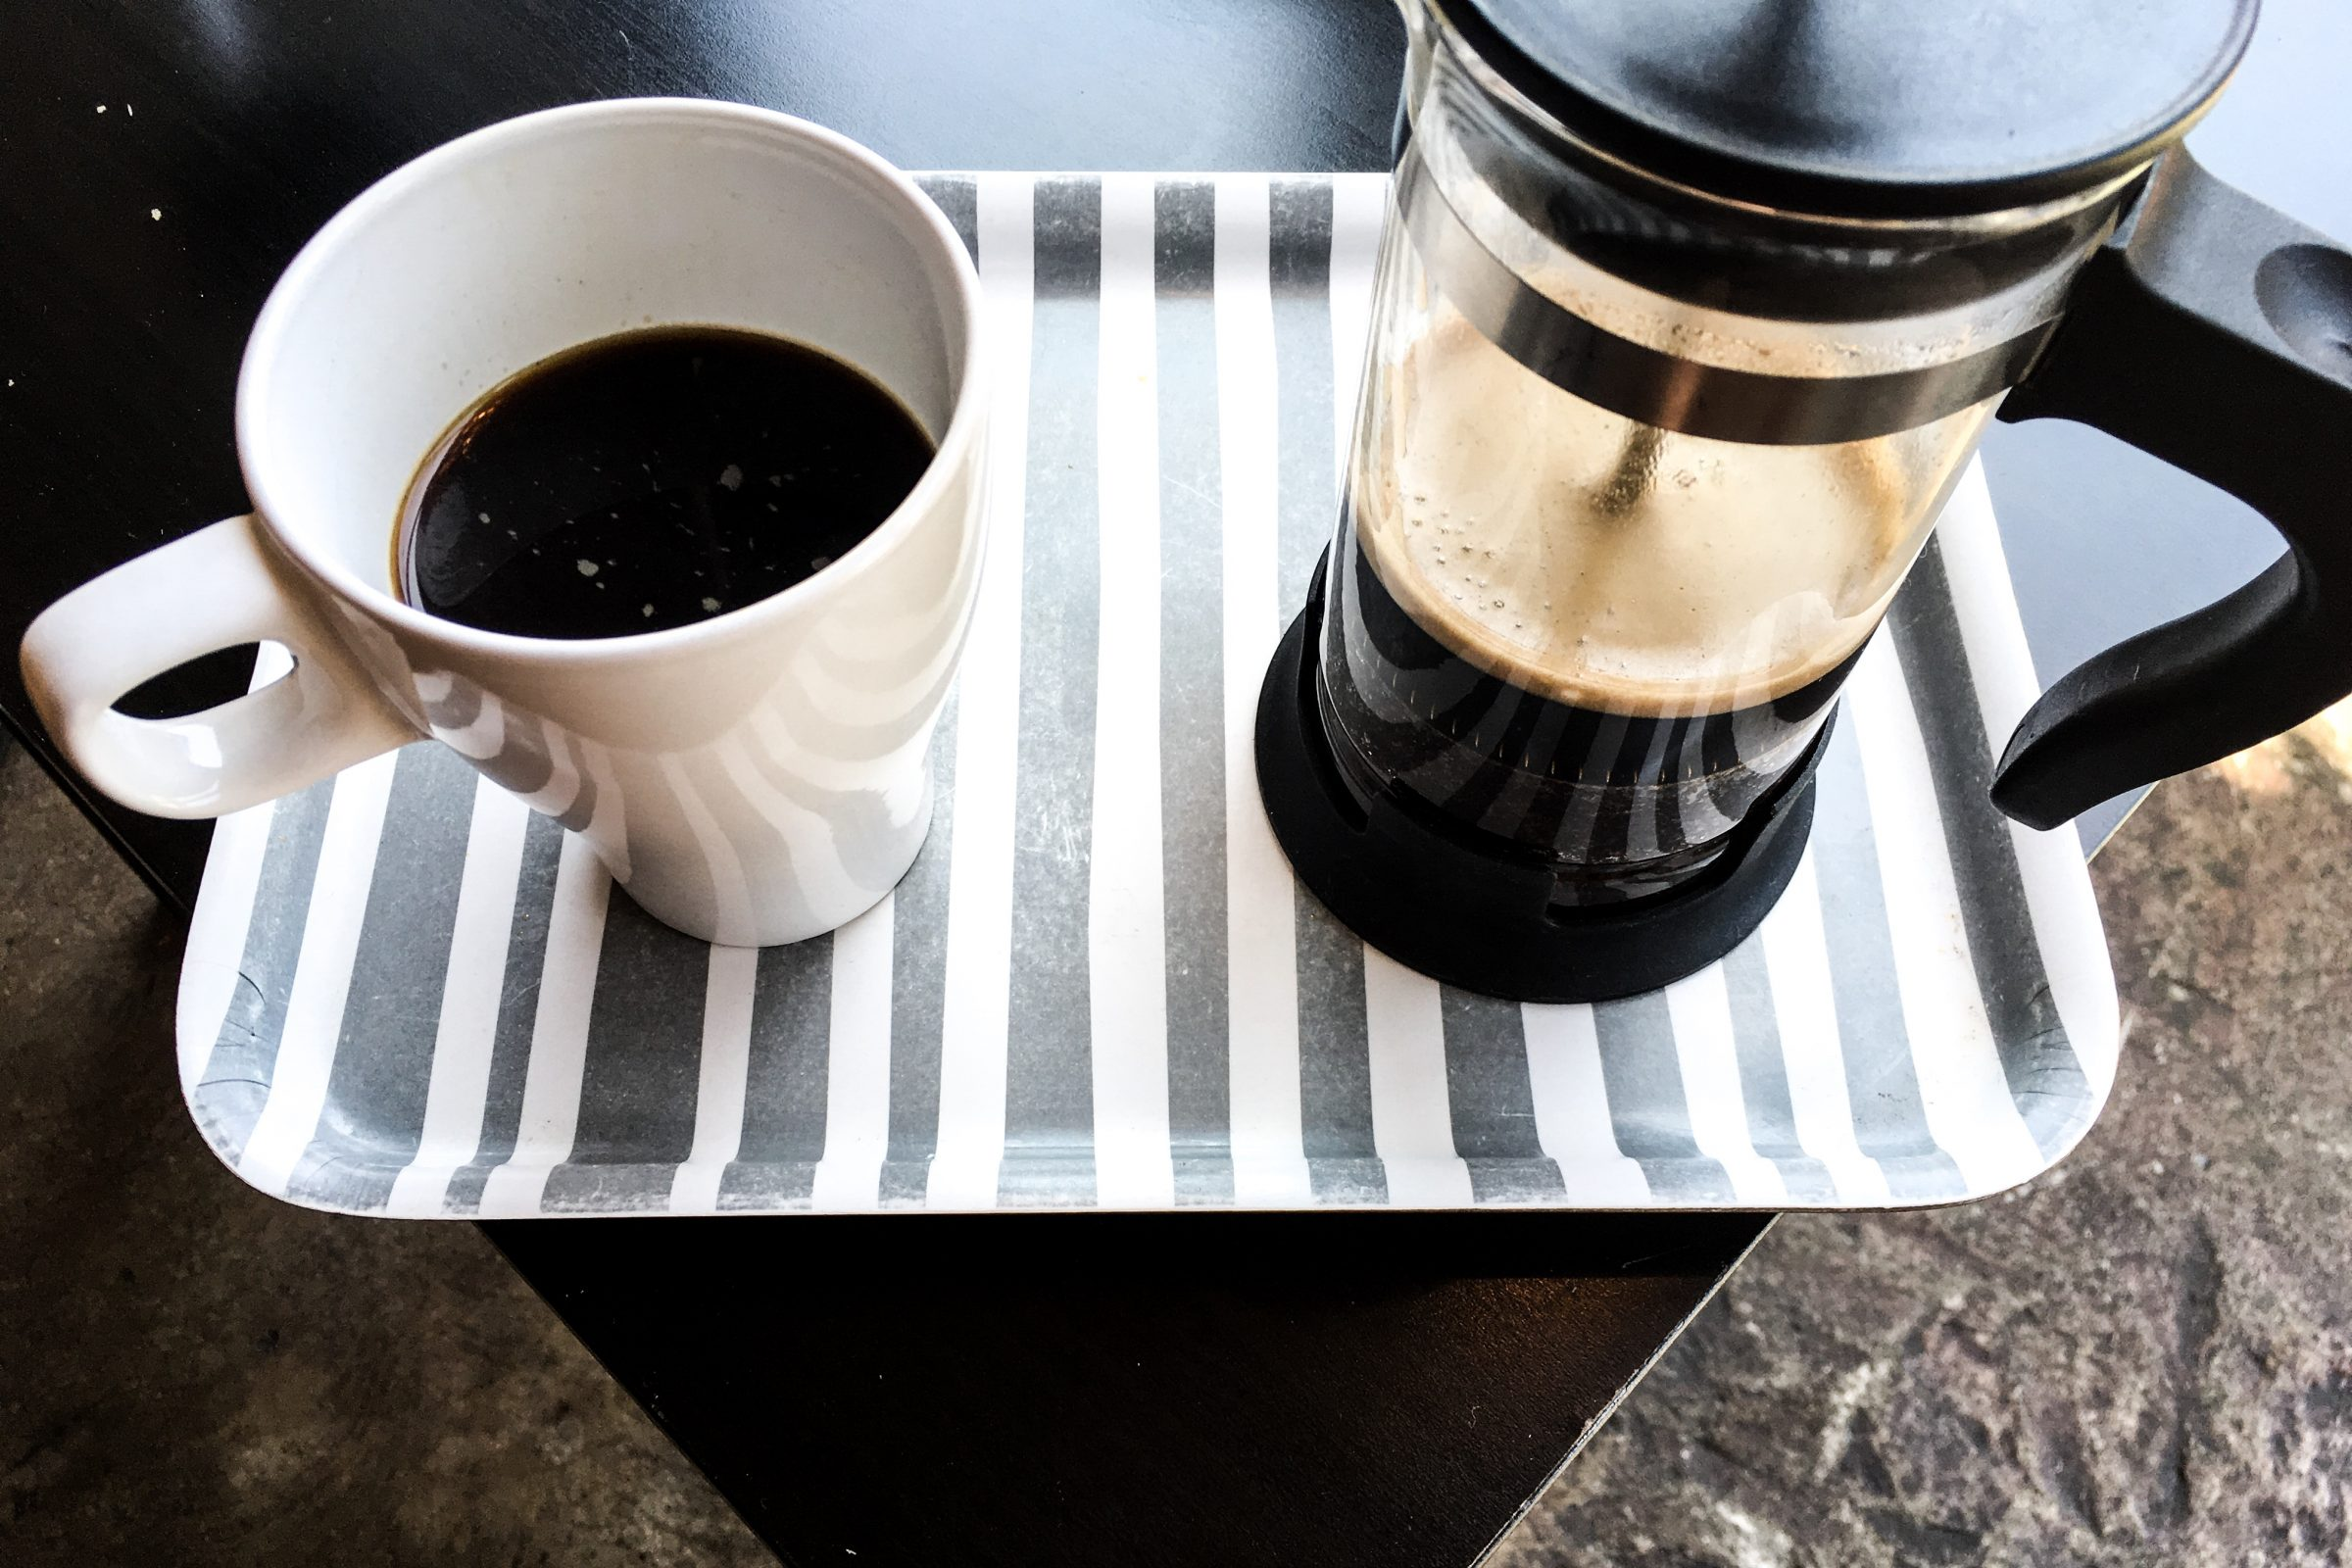 Coffee Mug & French Press on a Tray